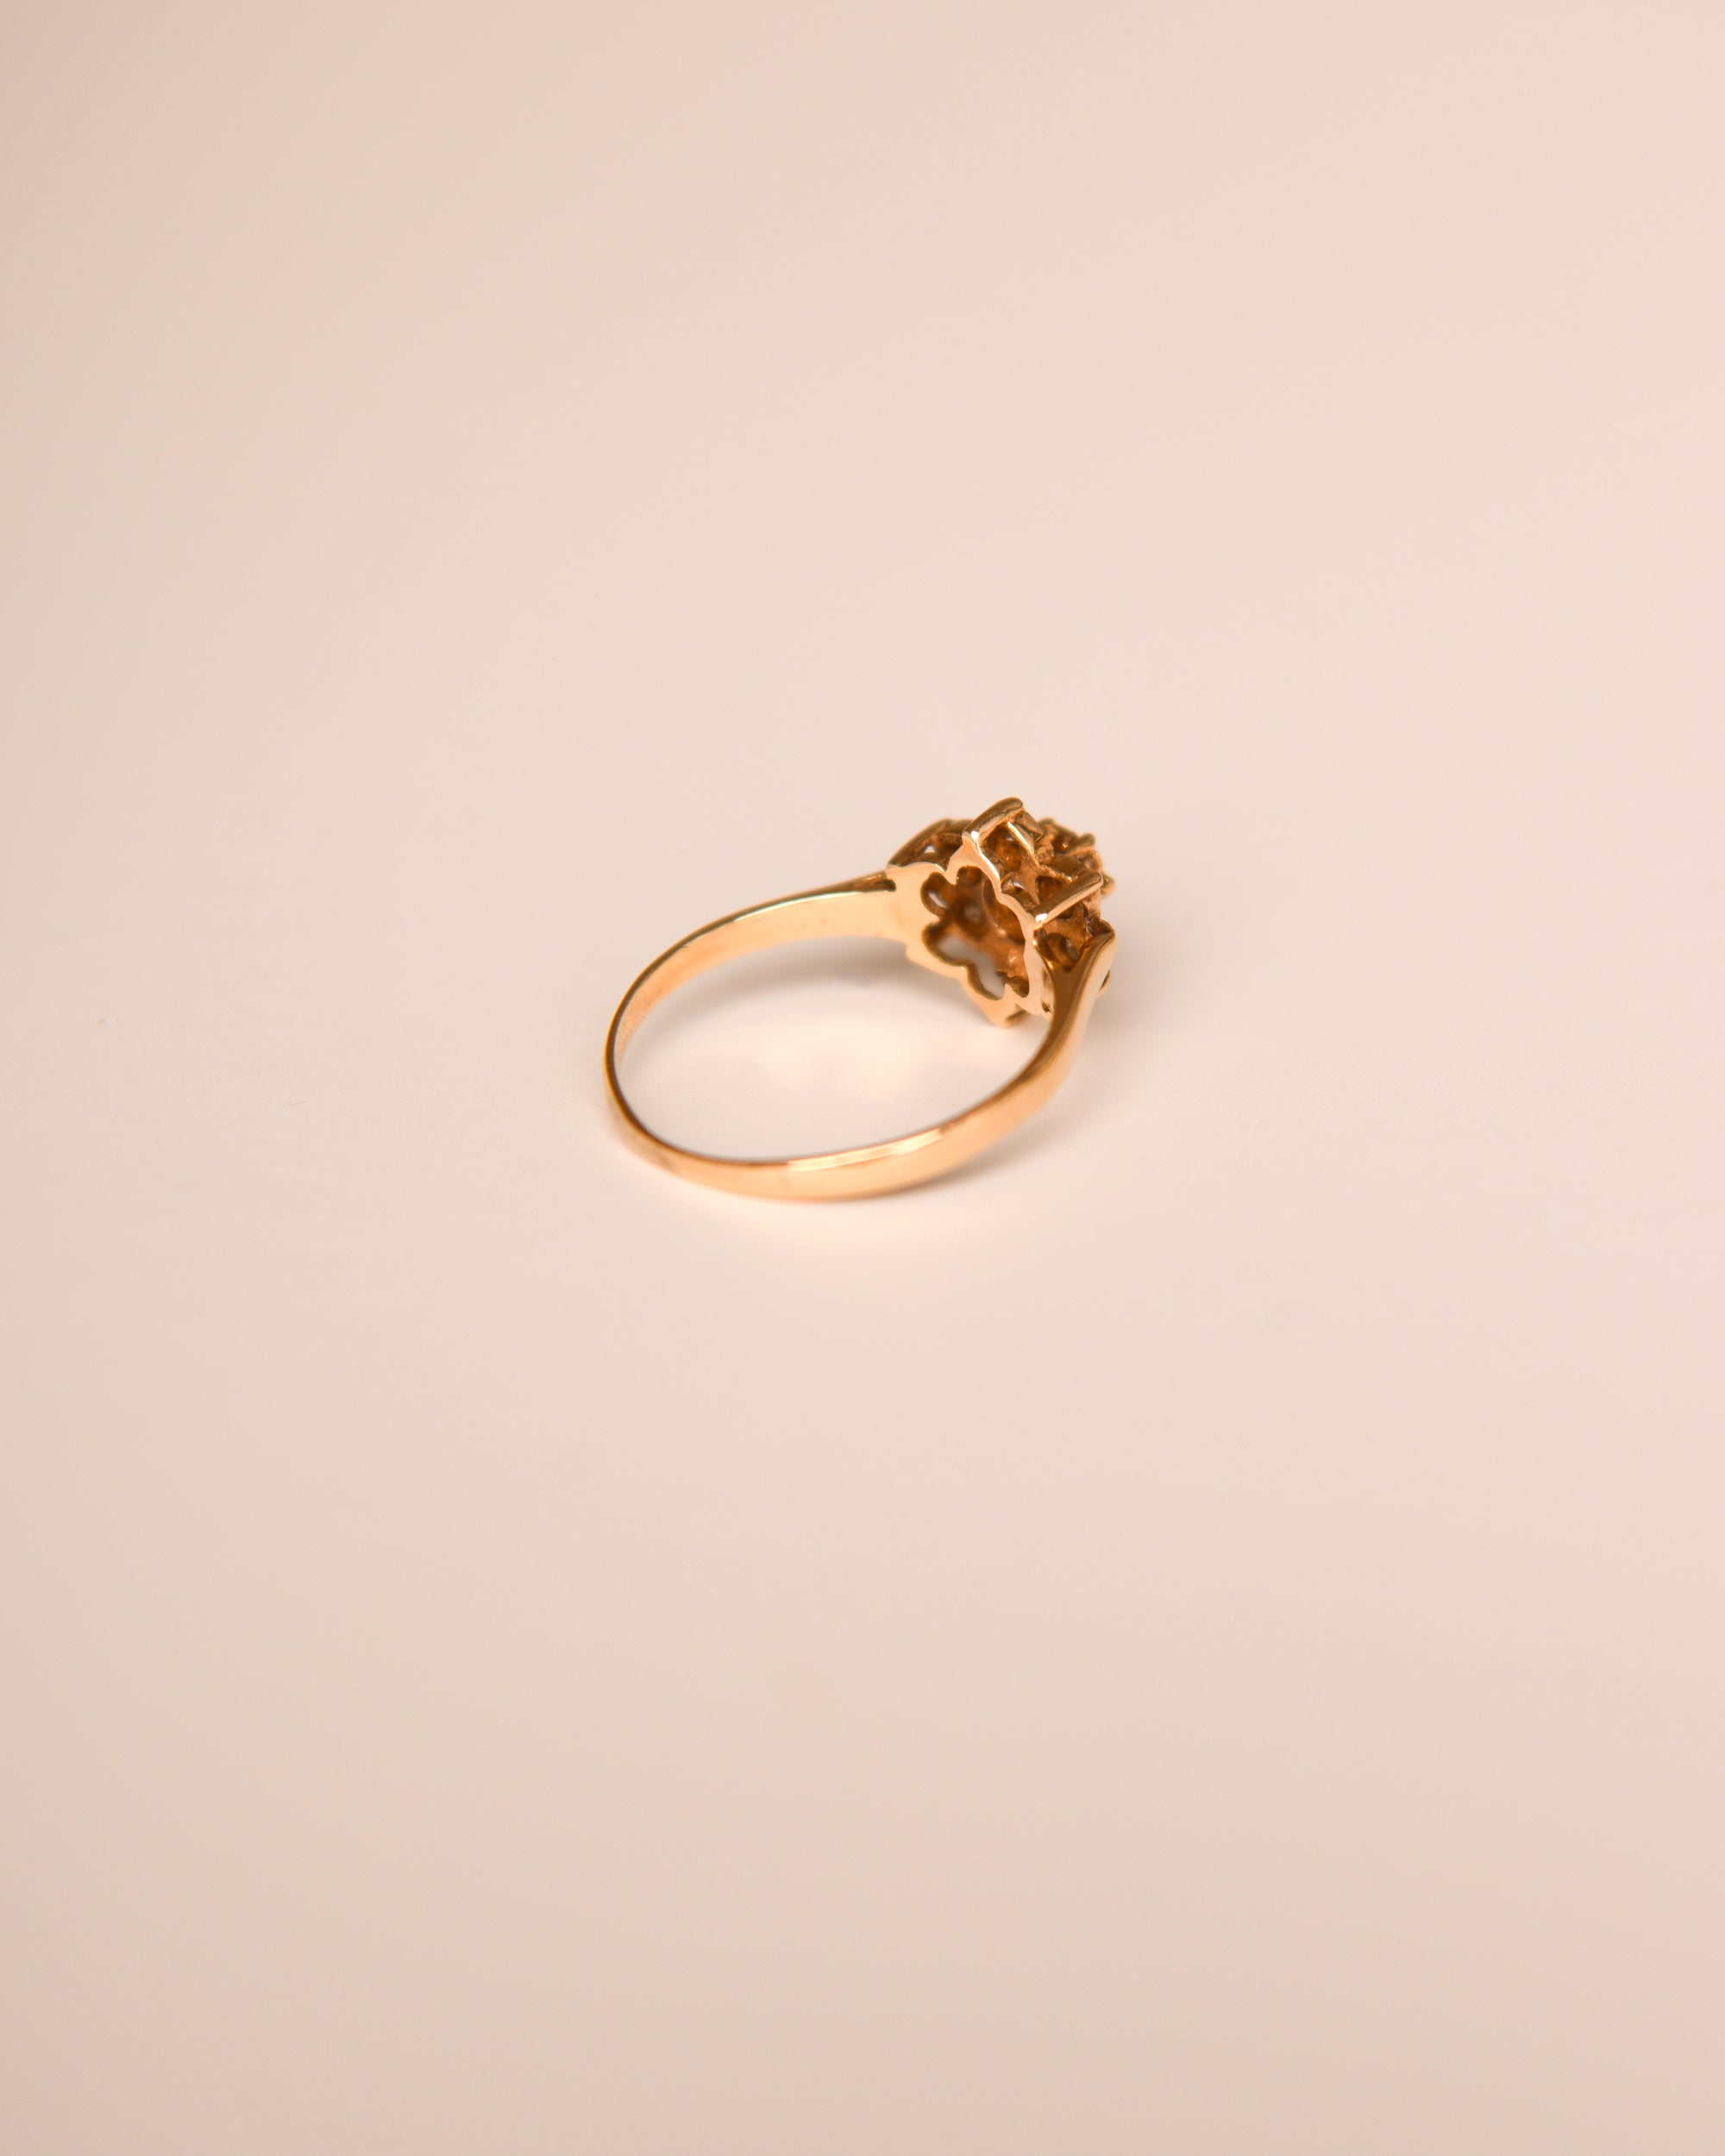 Sophia 9ct Gold Vintage Diamond Ring